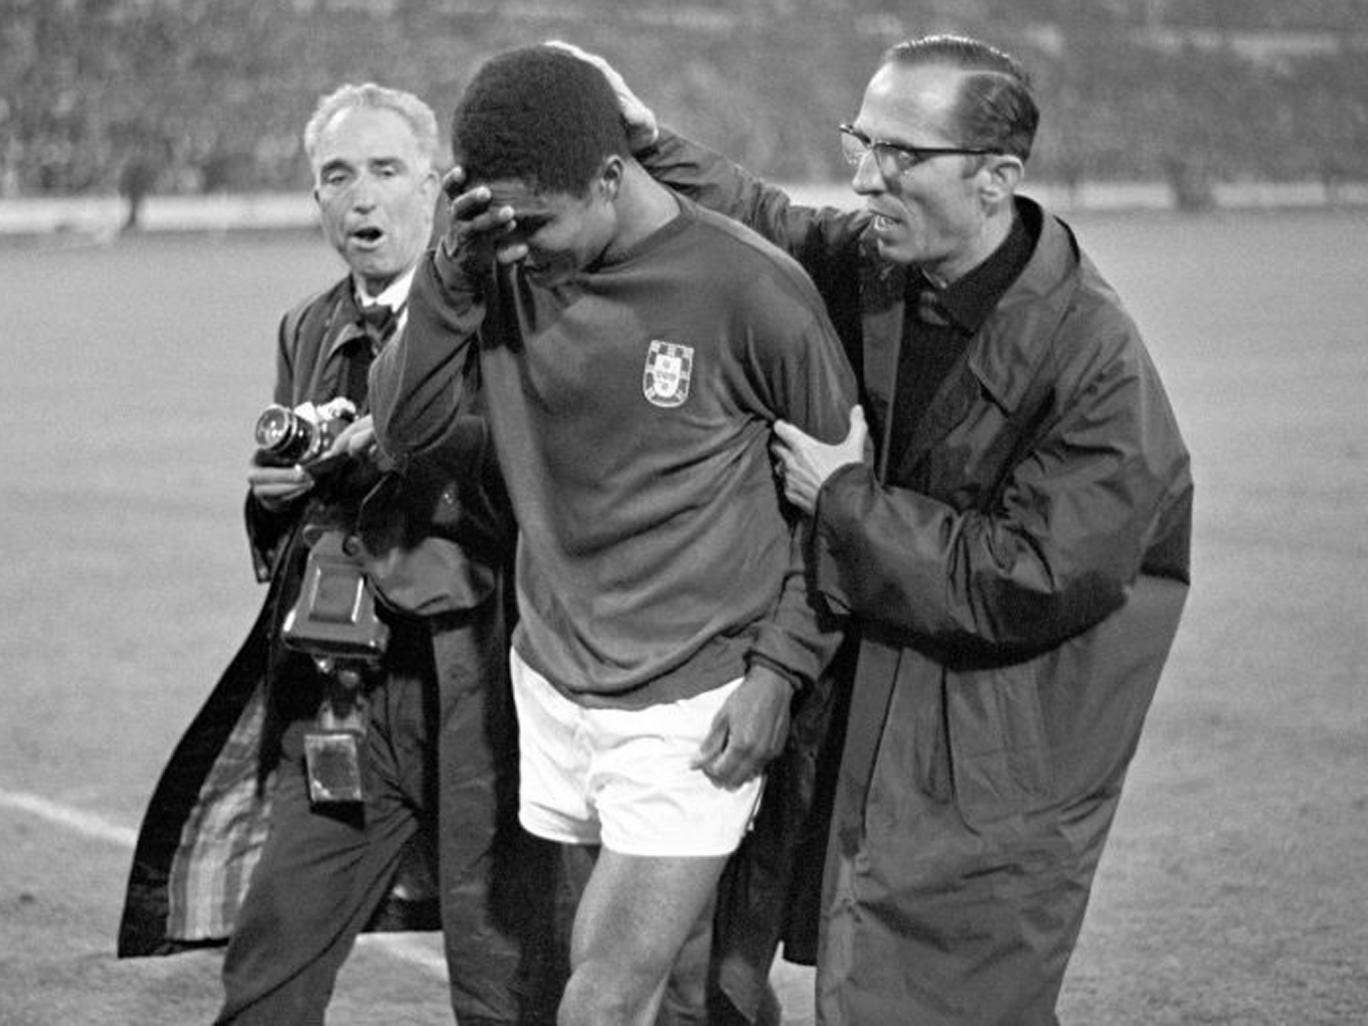 Portugal's Eusebio being consoled by a compatriot as he leaves the field in tears after Portugal had been defeated 1-2 by England in the 1966 World Cup semi-final at Wembley